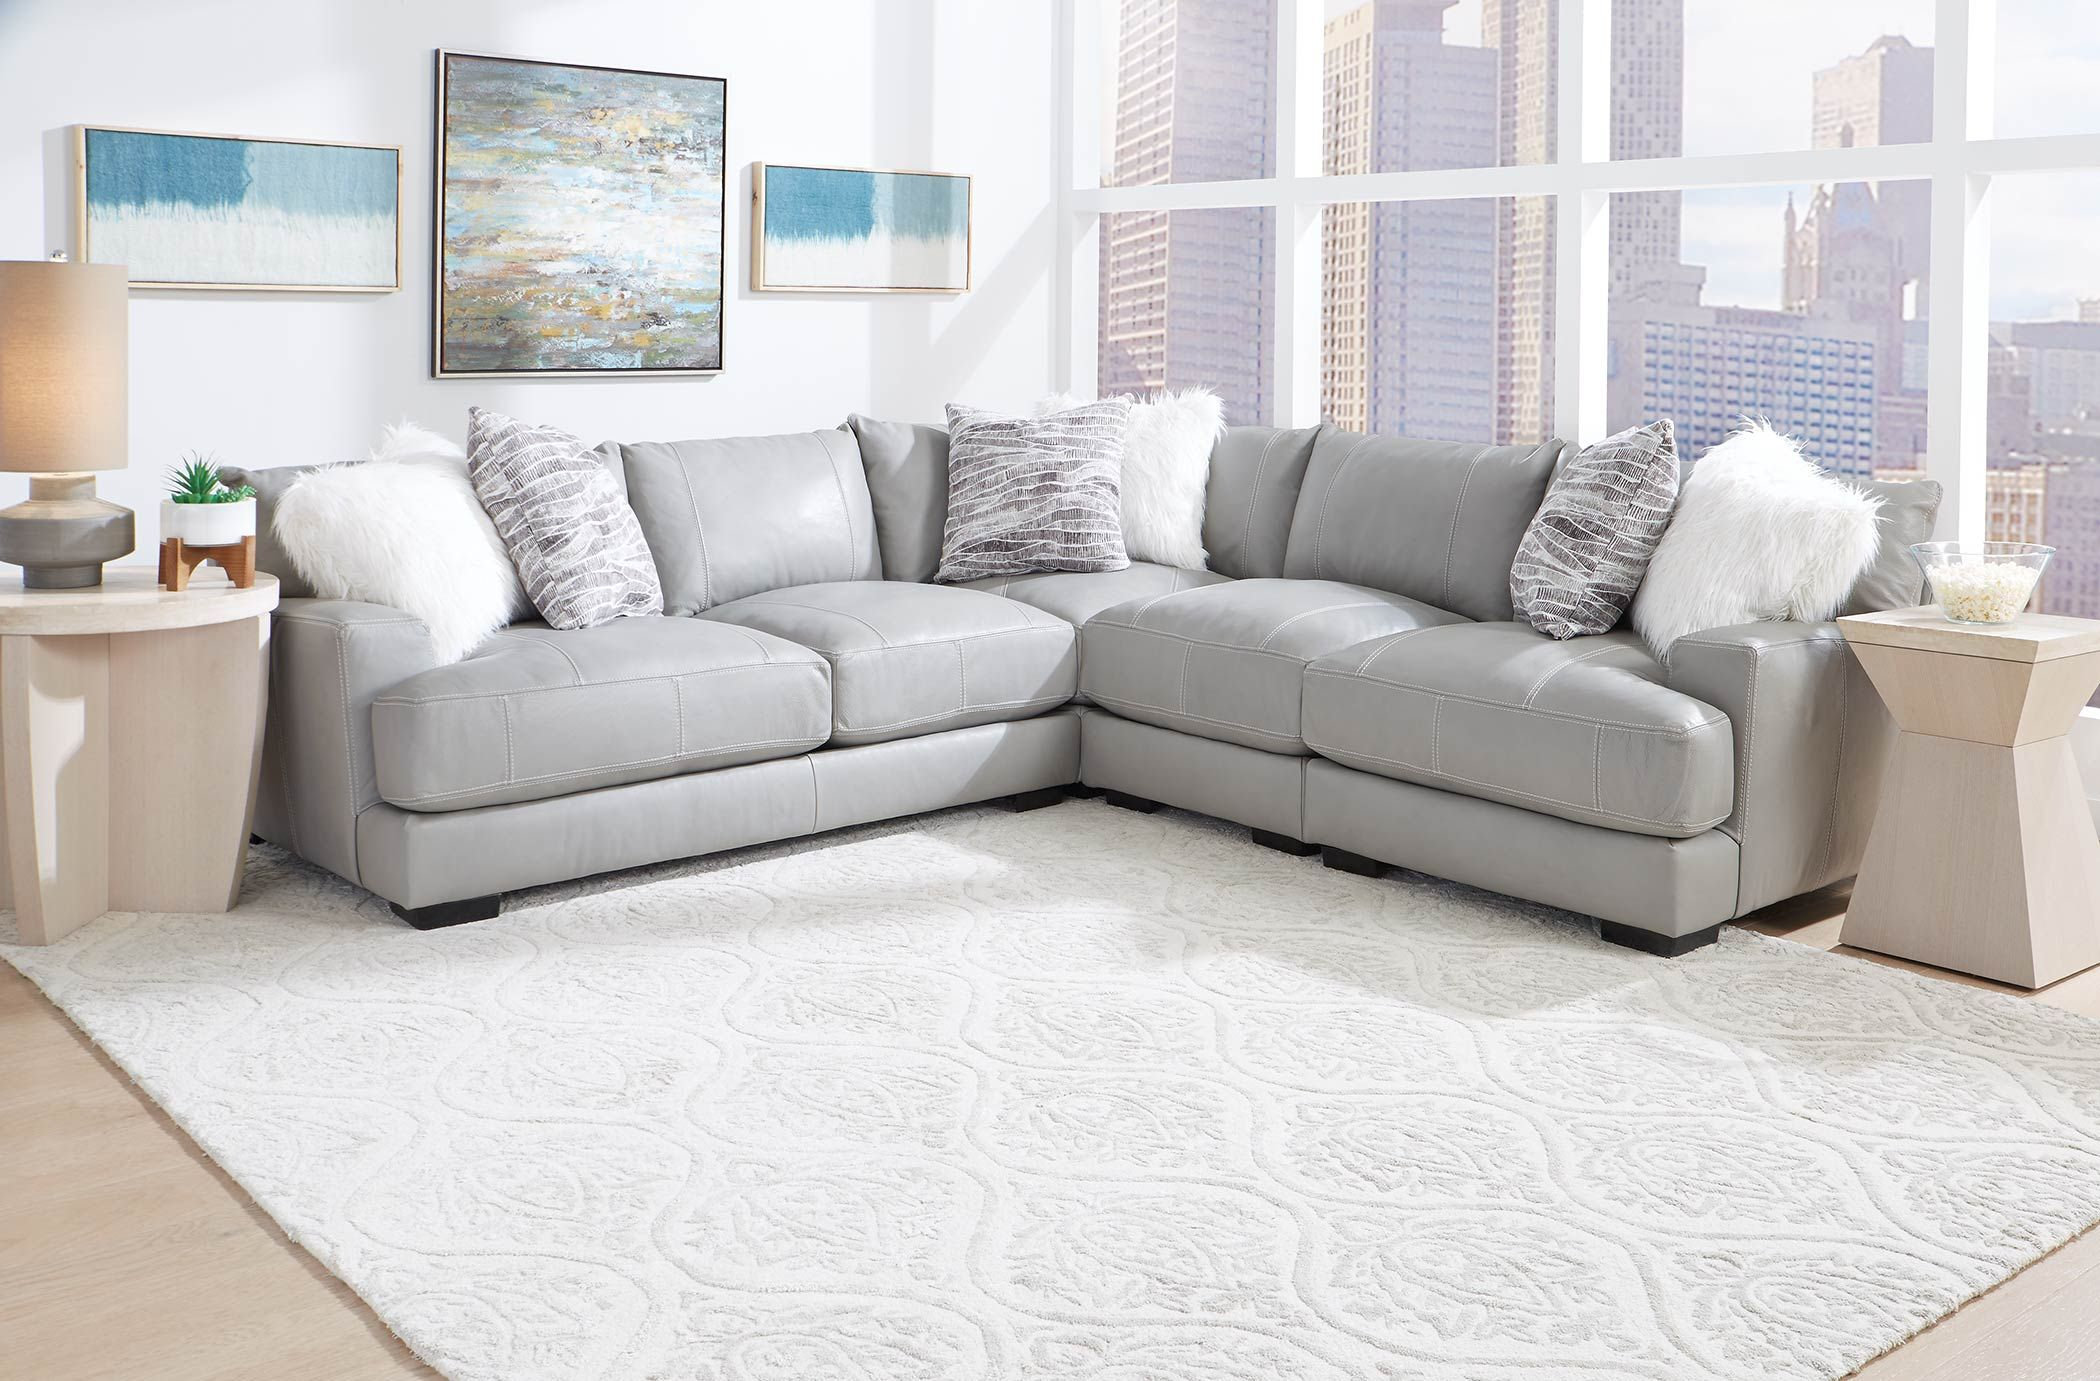 909 Antonia Sectional By Franklin Modern Leather Sectional Sofas Italian Leather Sectional Sofa Grey Leather Sectional